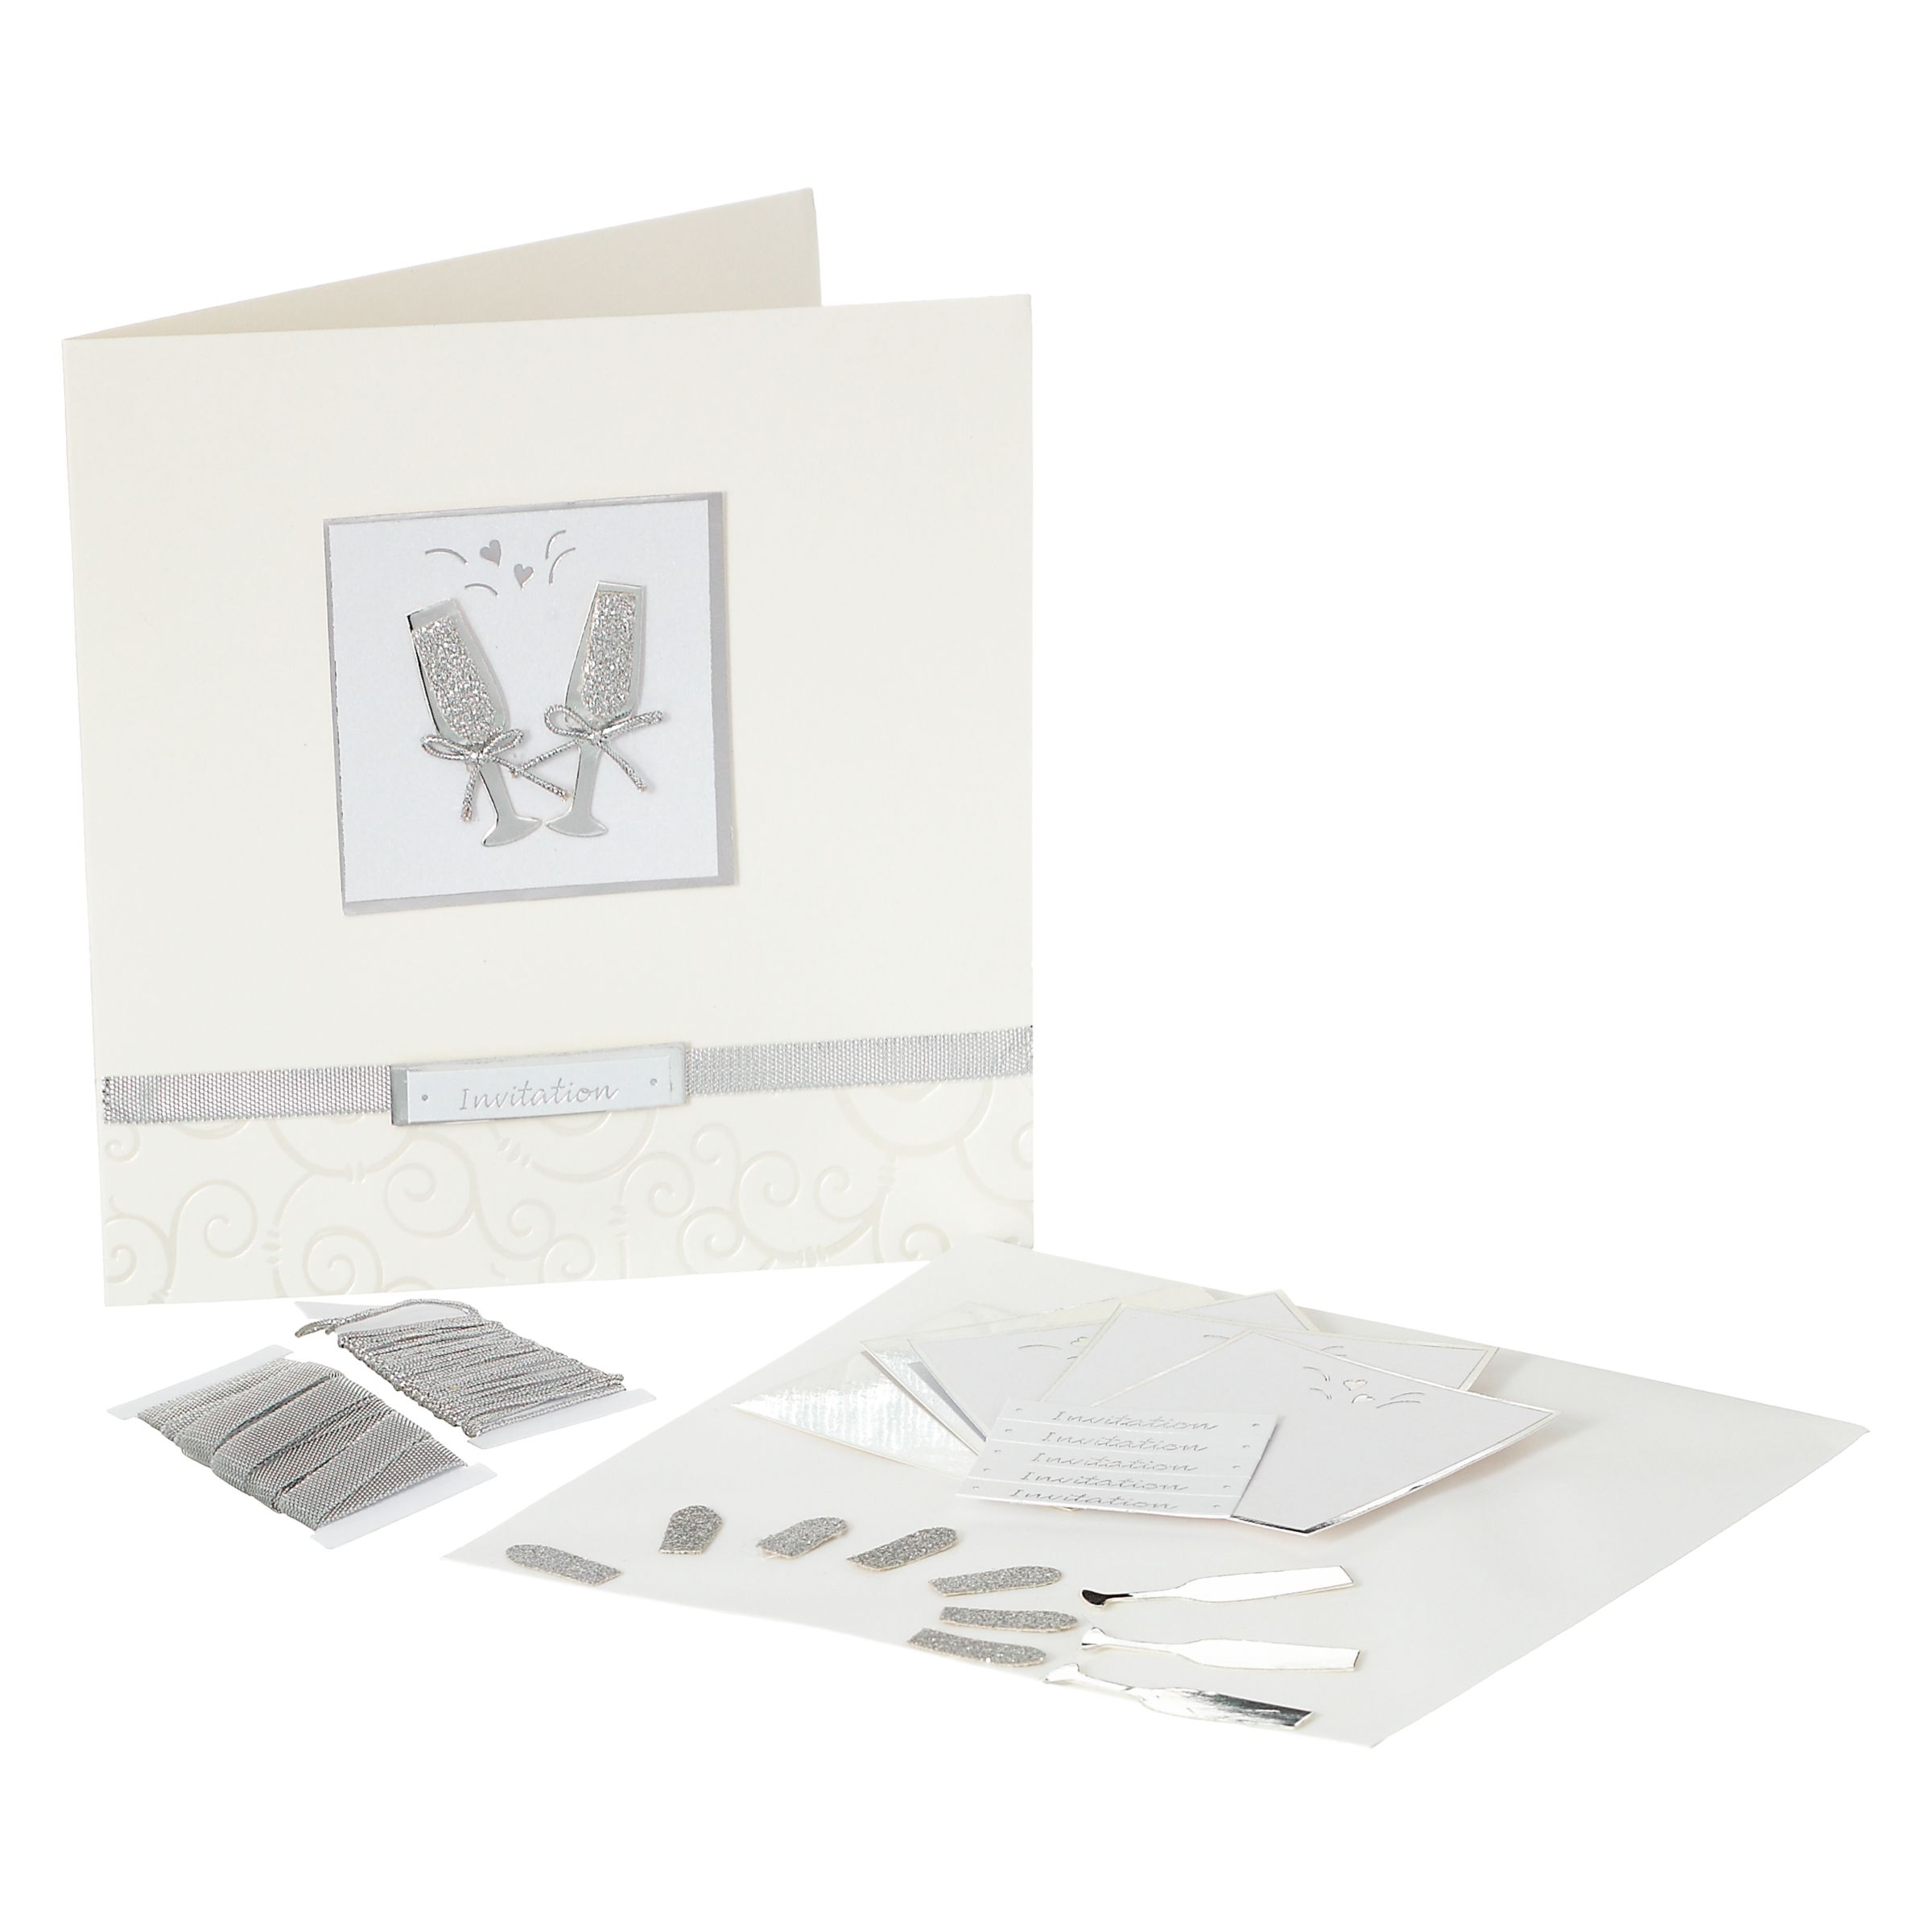 John Lewis Wedding Invitation Kit, White